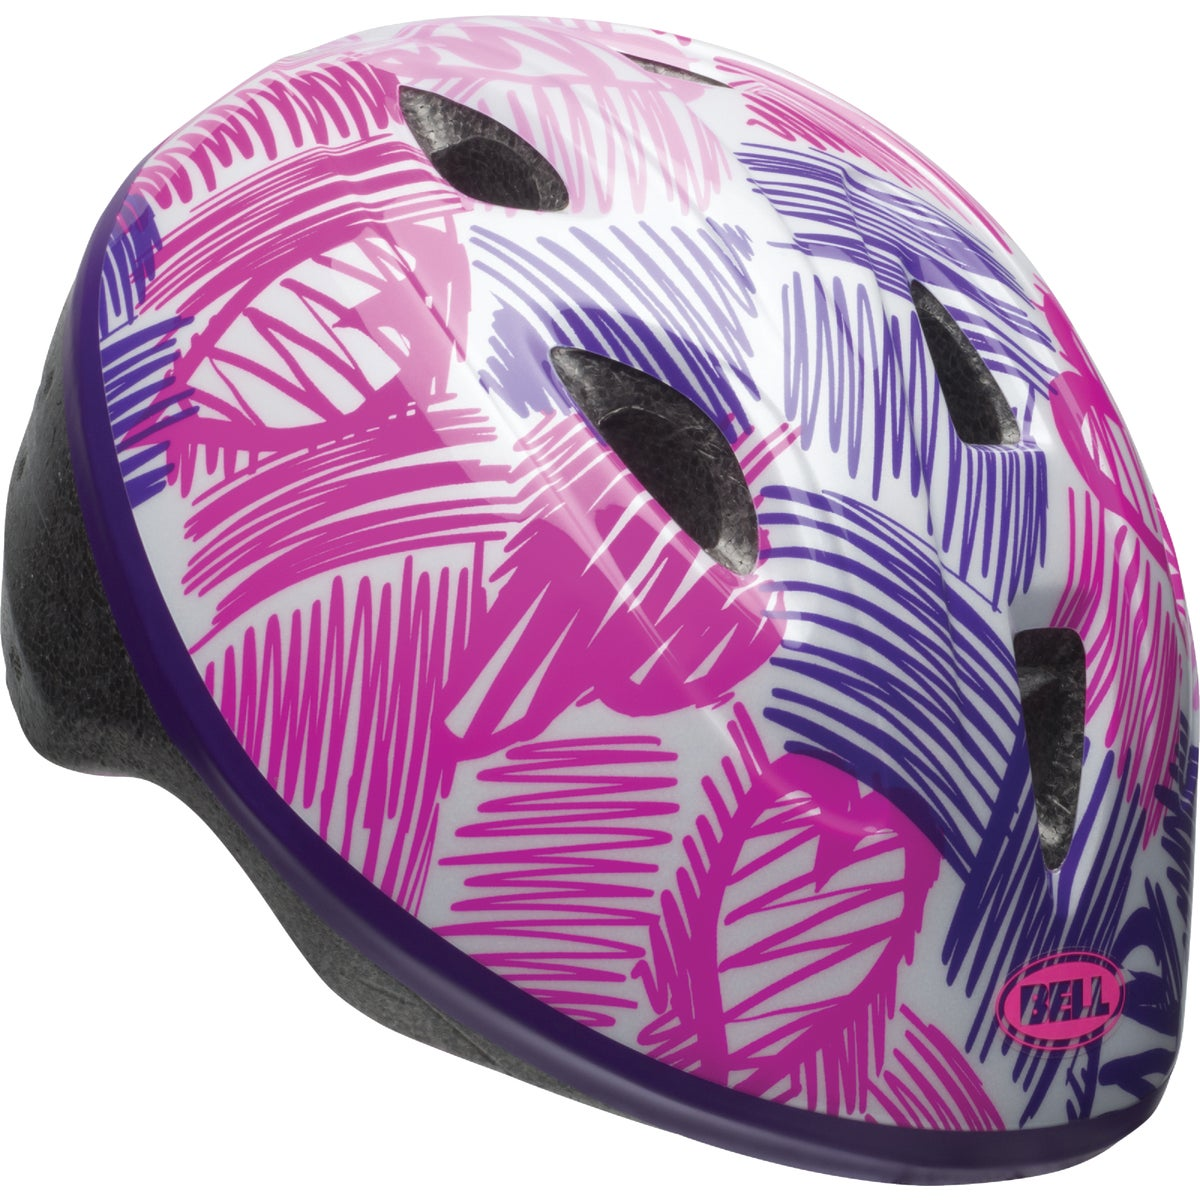 GIRLS TODDLER HELMET - 1007863 by Bell Sports